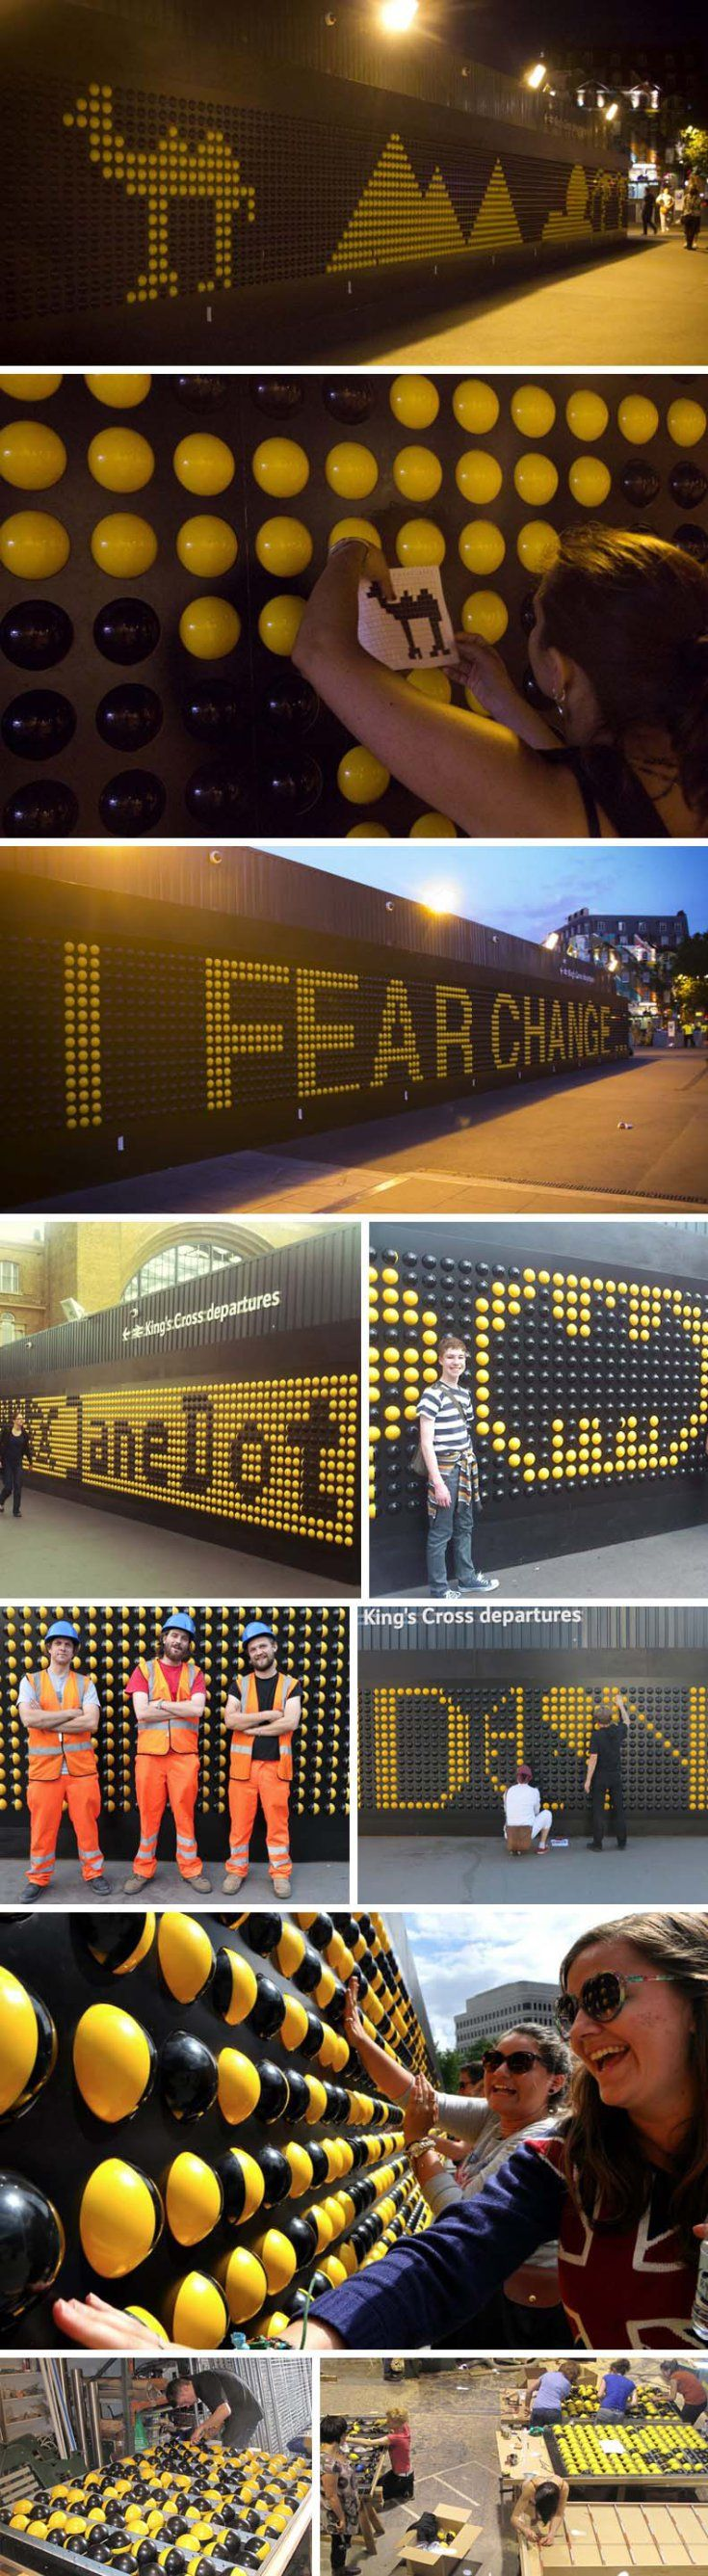 Public art, fun multi-sensory interactive installation located at the entrance to King's Cross Station, London